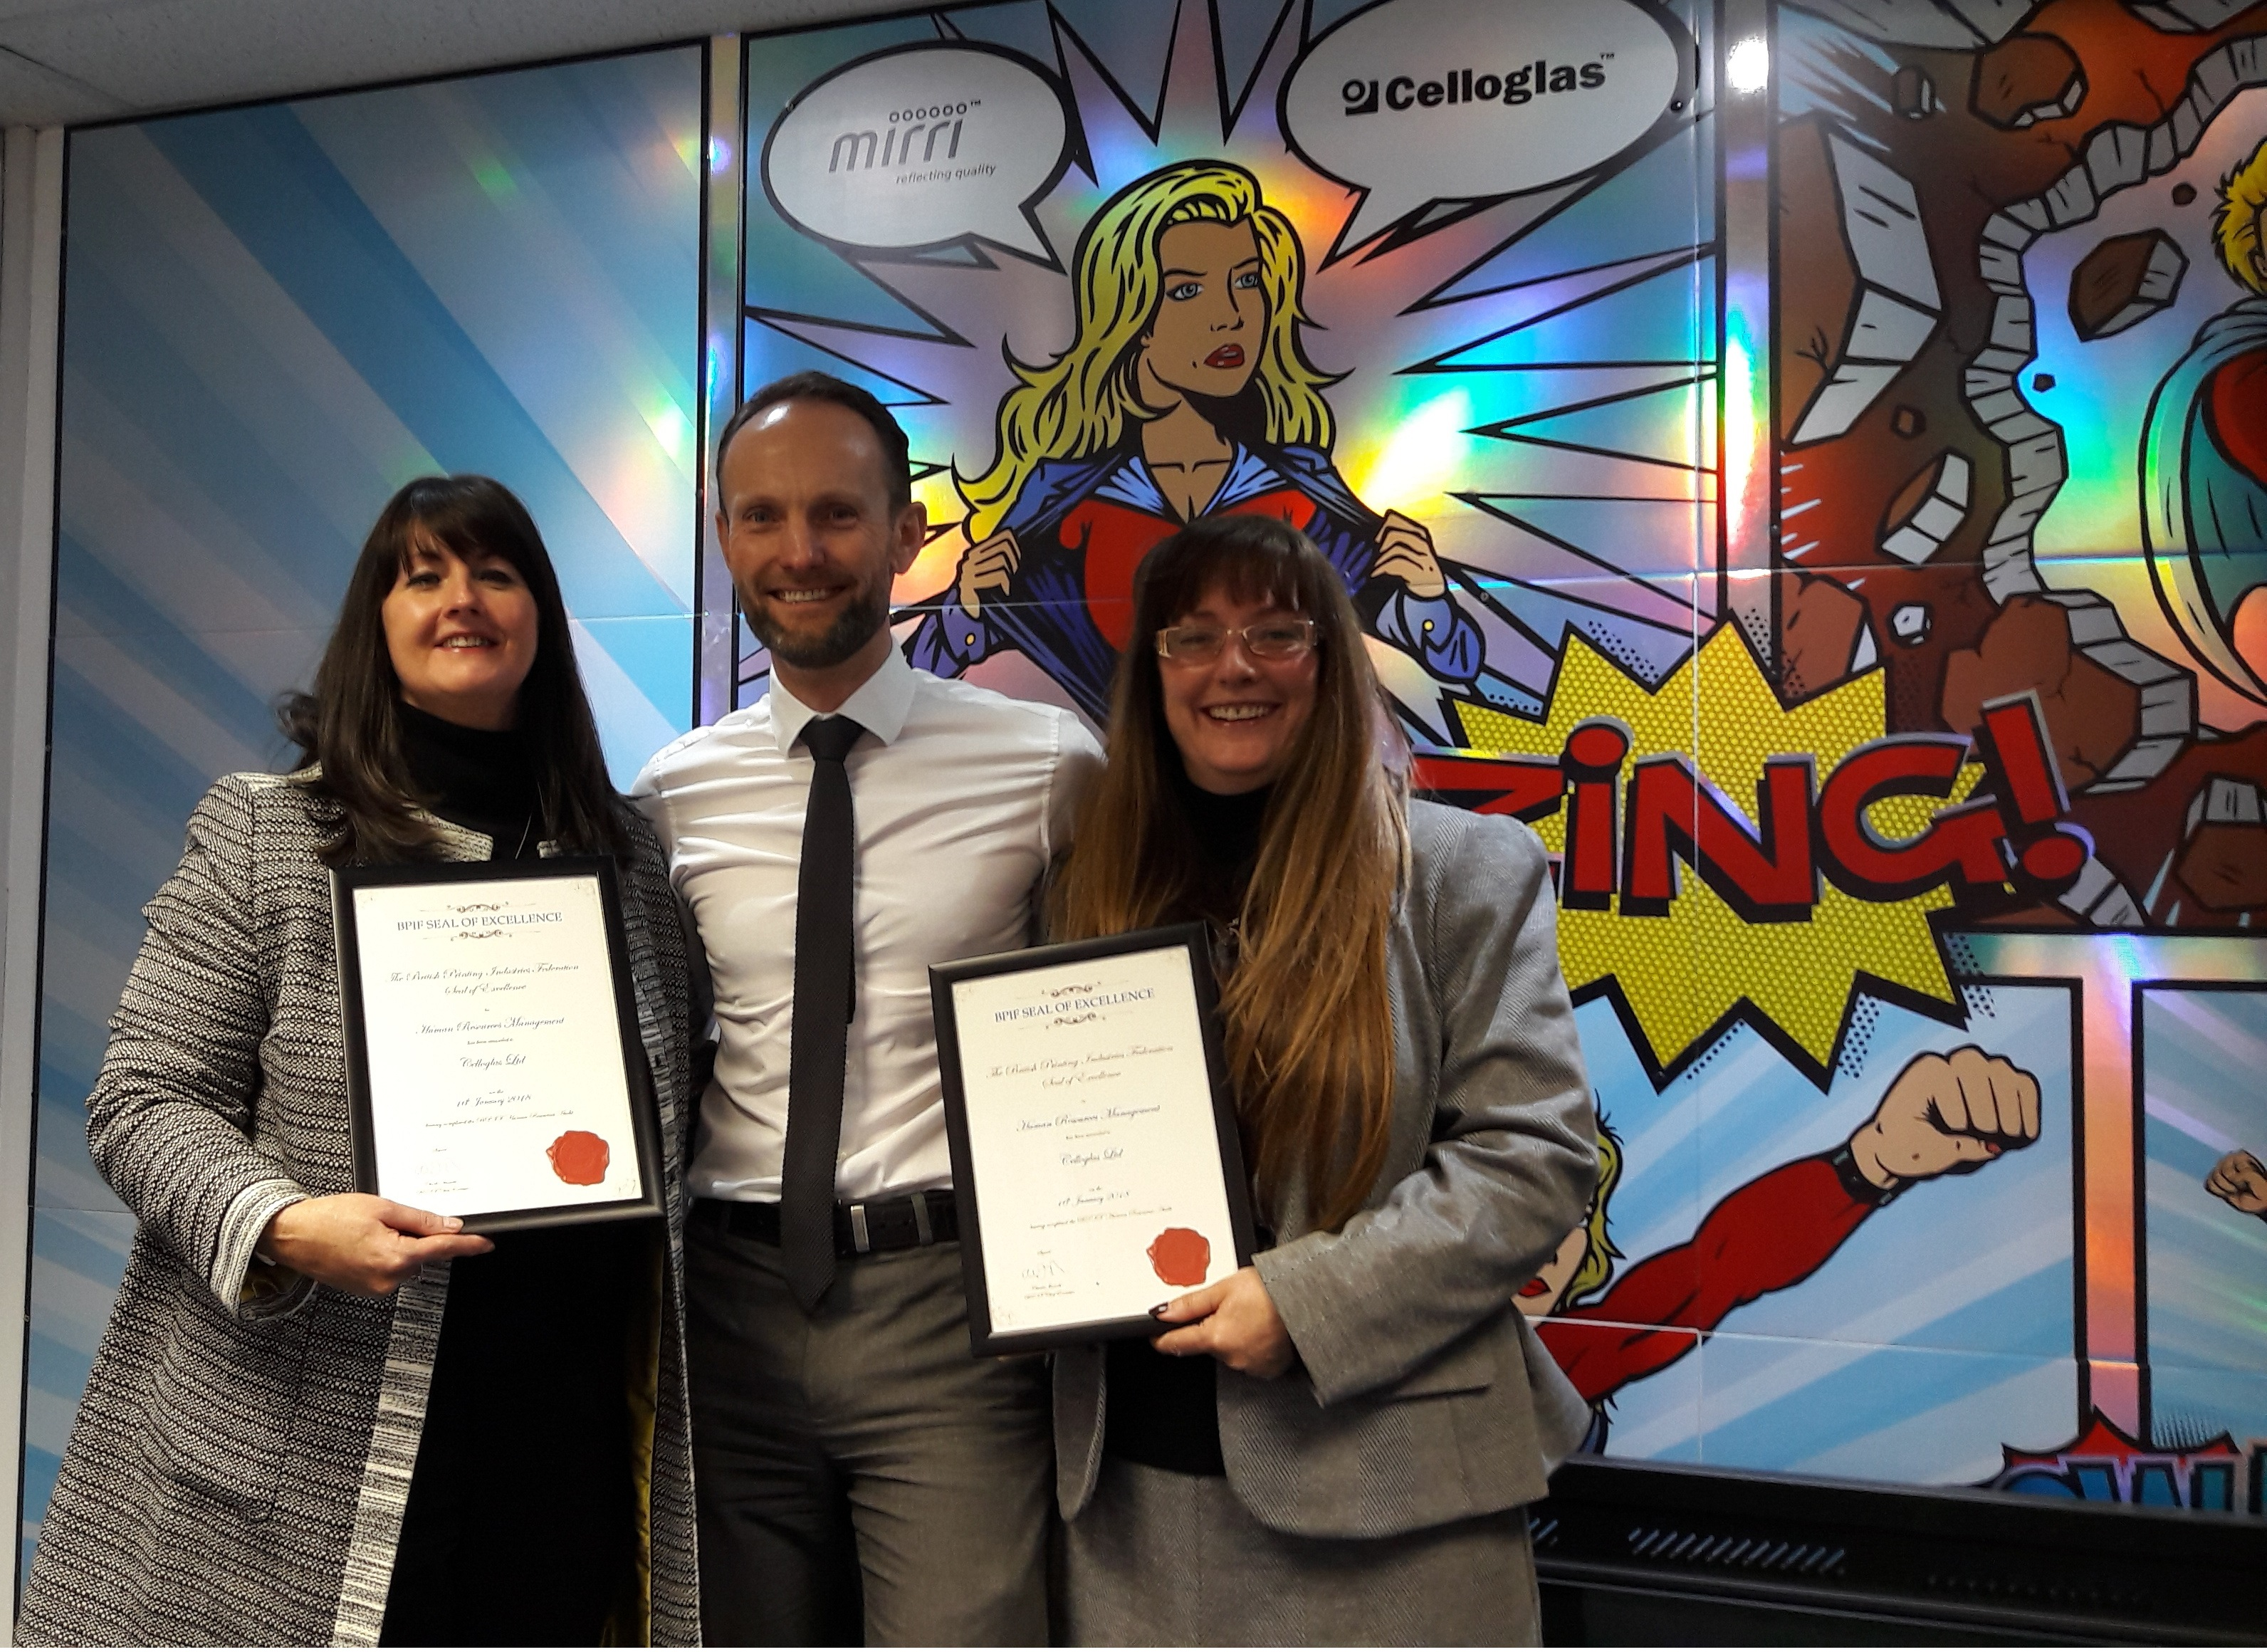 Celloglas achieve HR Seal of Excellence